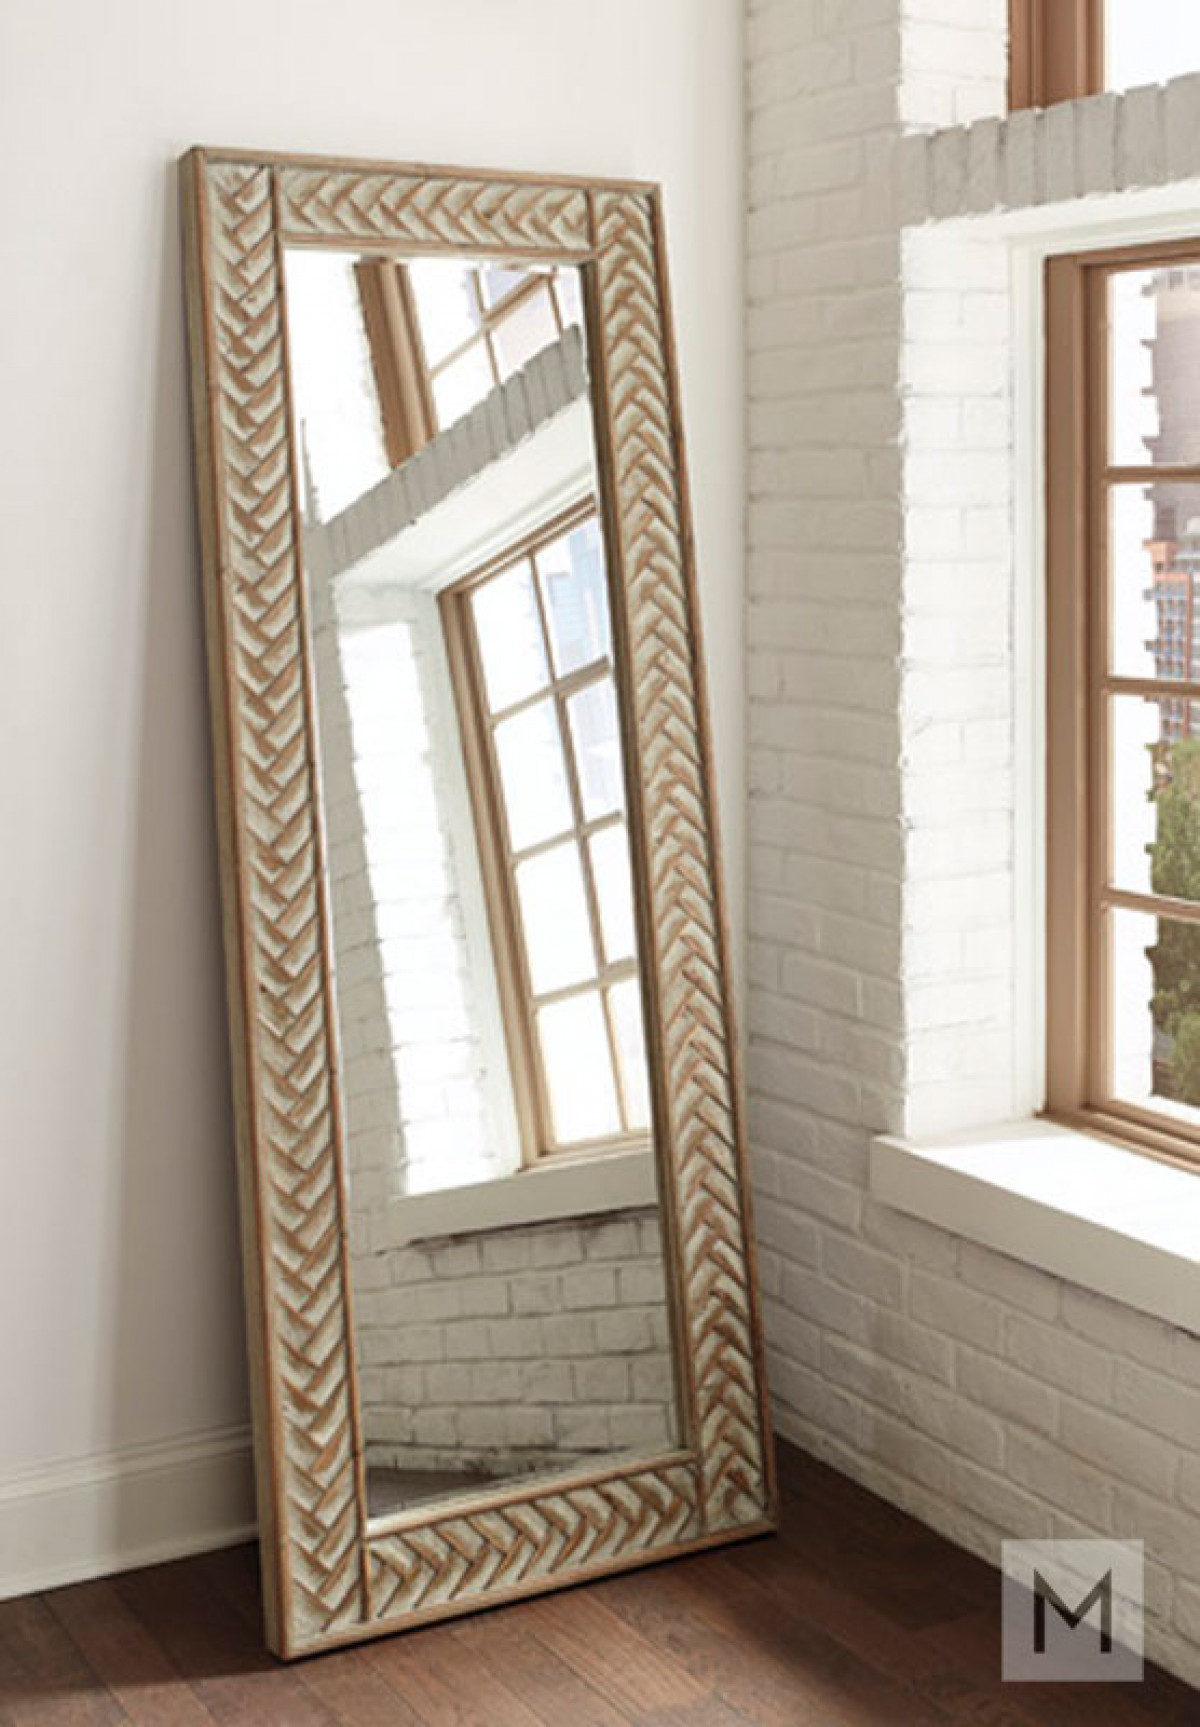 Chevron Weave Full Length Accent Mirror in Whitewashed Wood